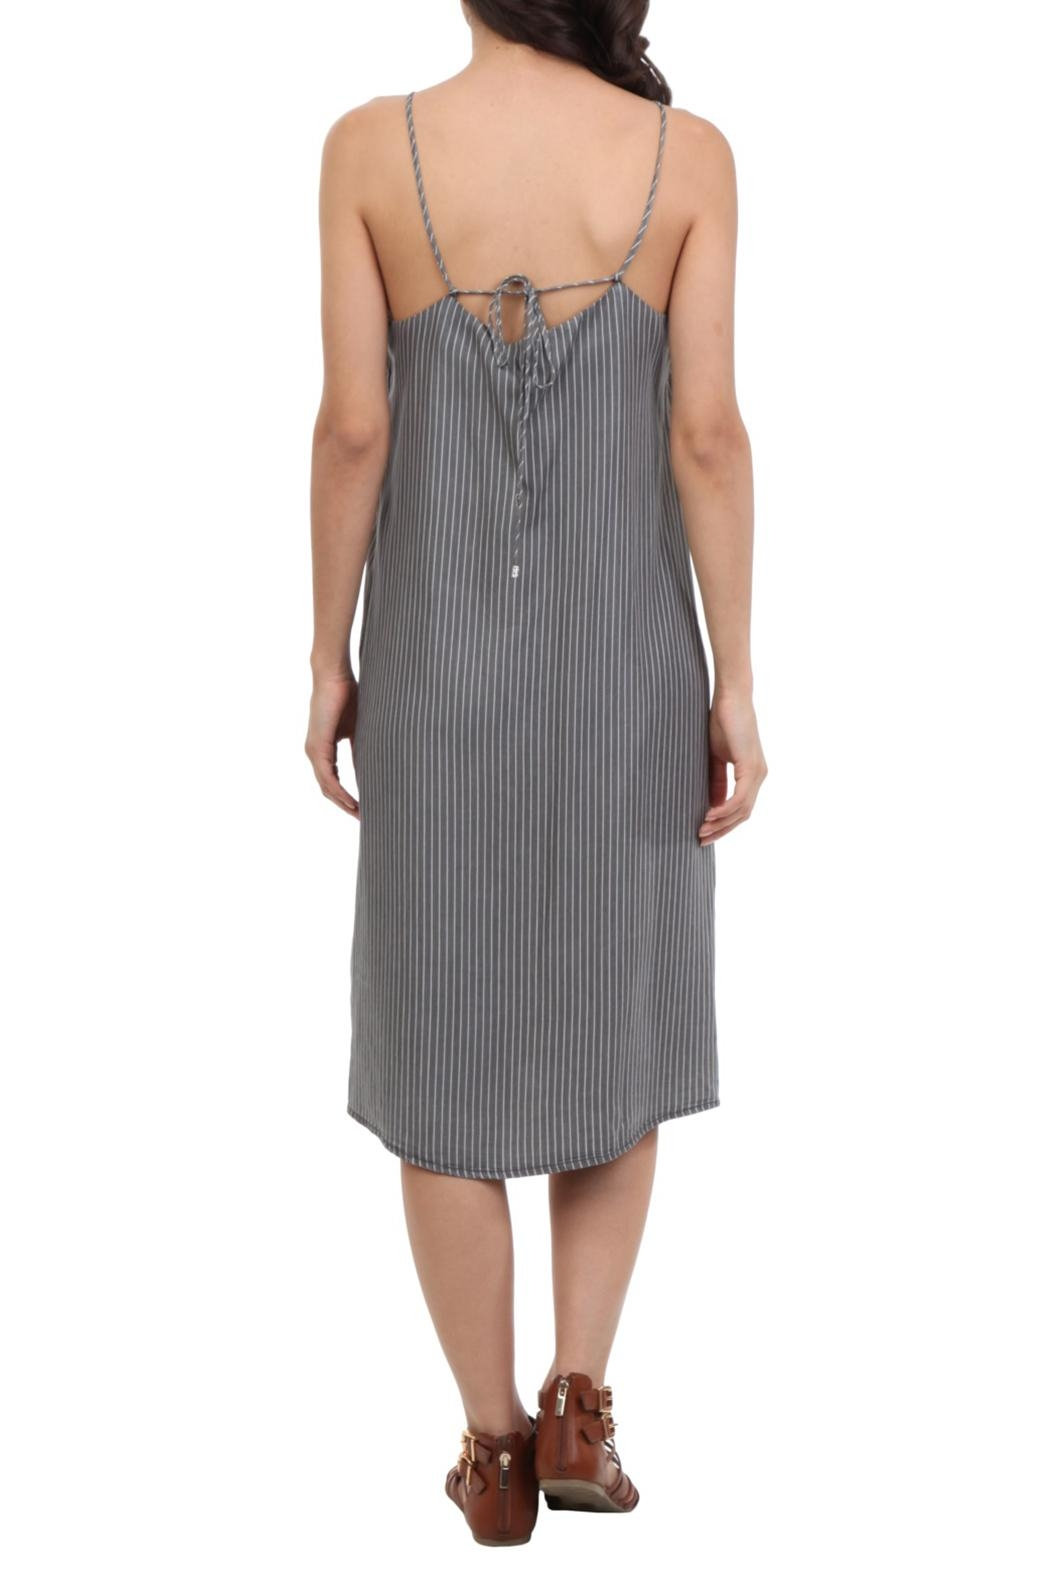 Naked Zebra Midi Denim Dress - Side Cropped Image